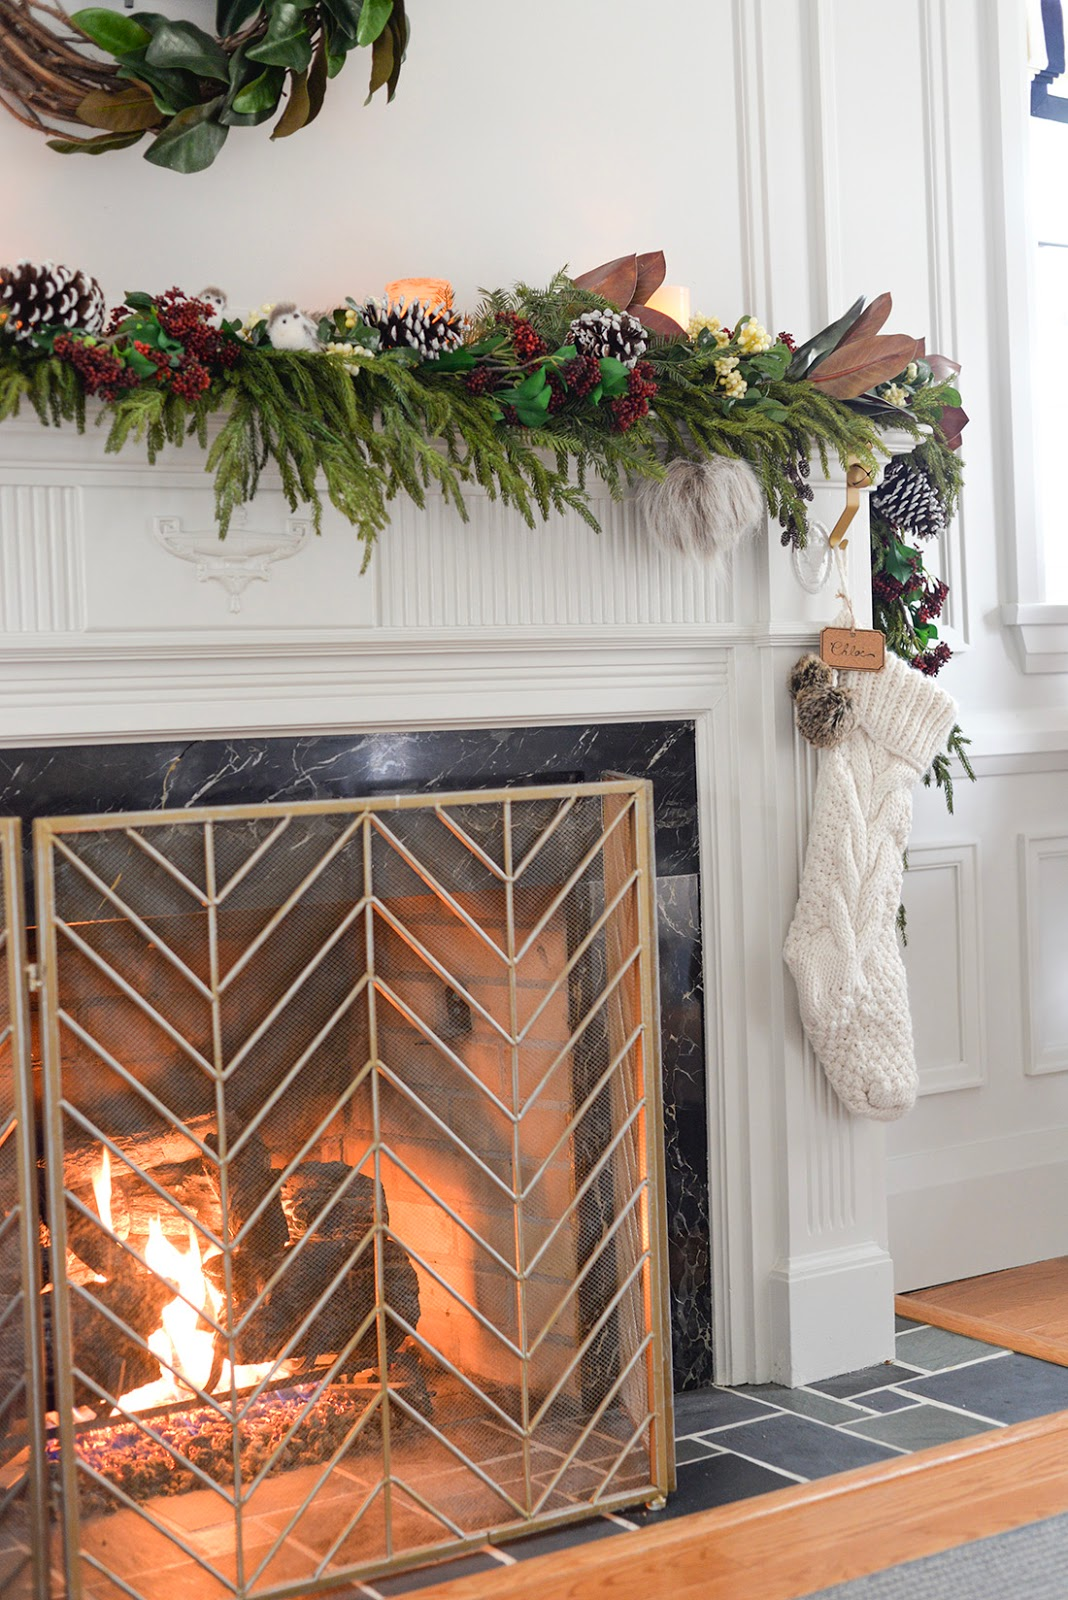 a faux christmas fireplace mantel garland with red seeded eucalyptus, a cedar garland and magnolia leaves. A vine and magnolia asymmetrical wreath with satin ribbon and metal bells. A brass chevron fireplace screen.